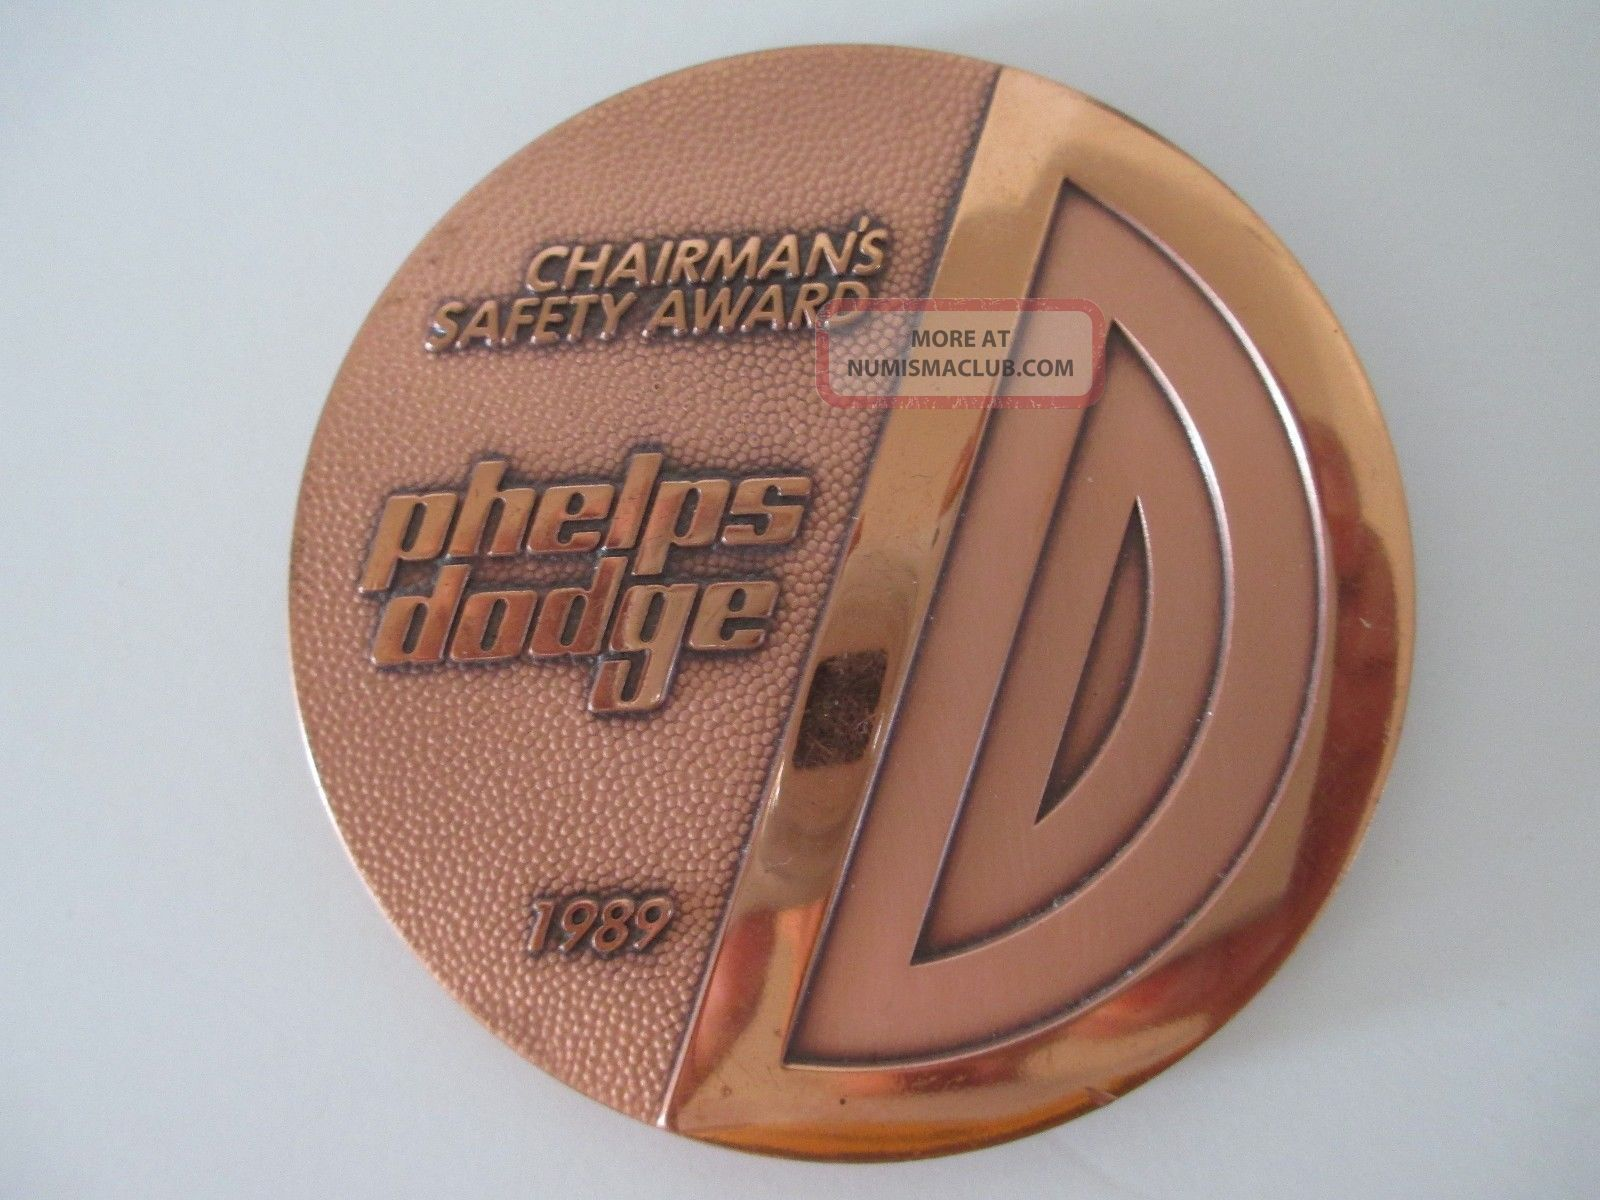 Vintage Phelps Dodge Morenci Mining - Copper Medallion Stocks & Bonds, Scripophily photo